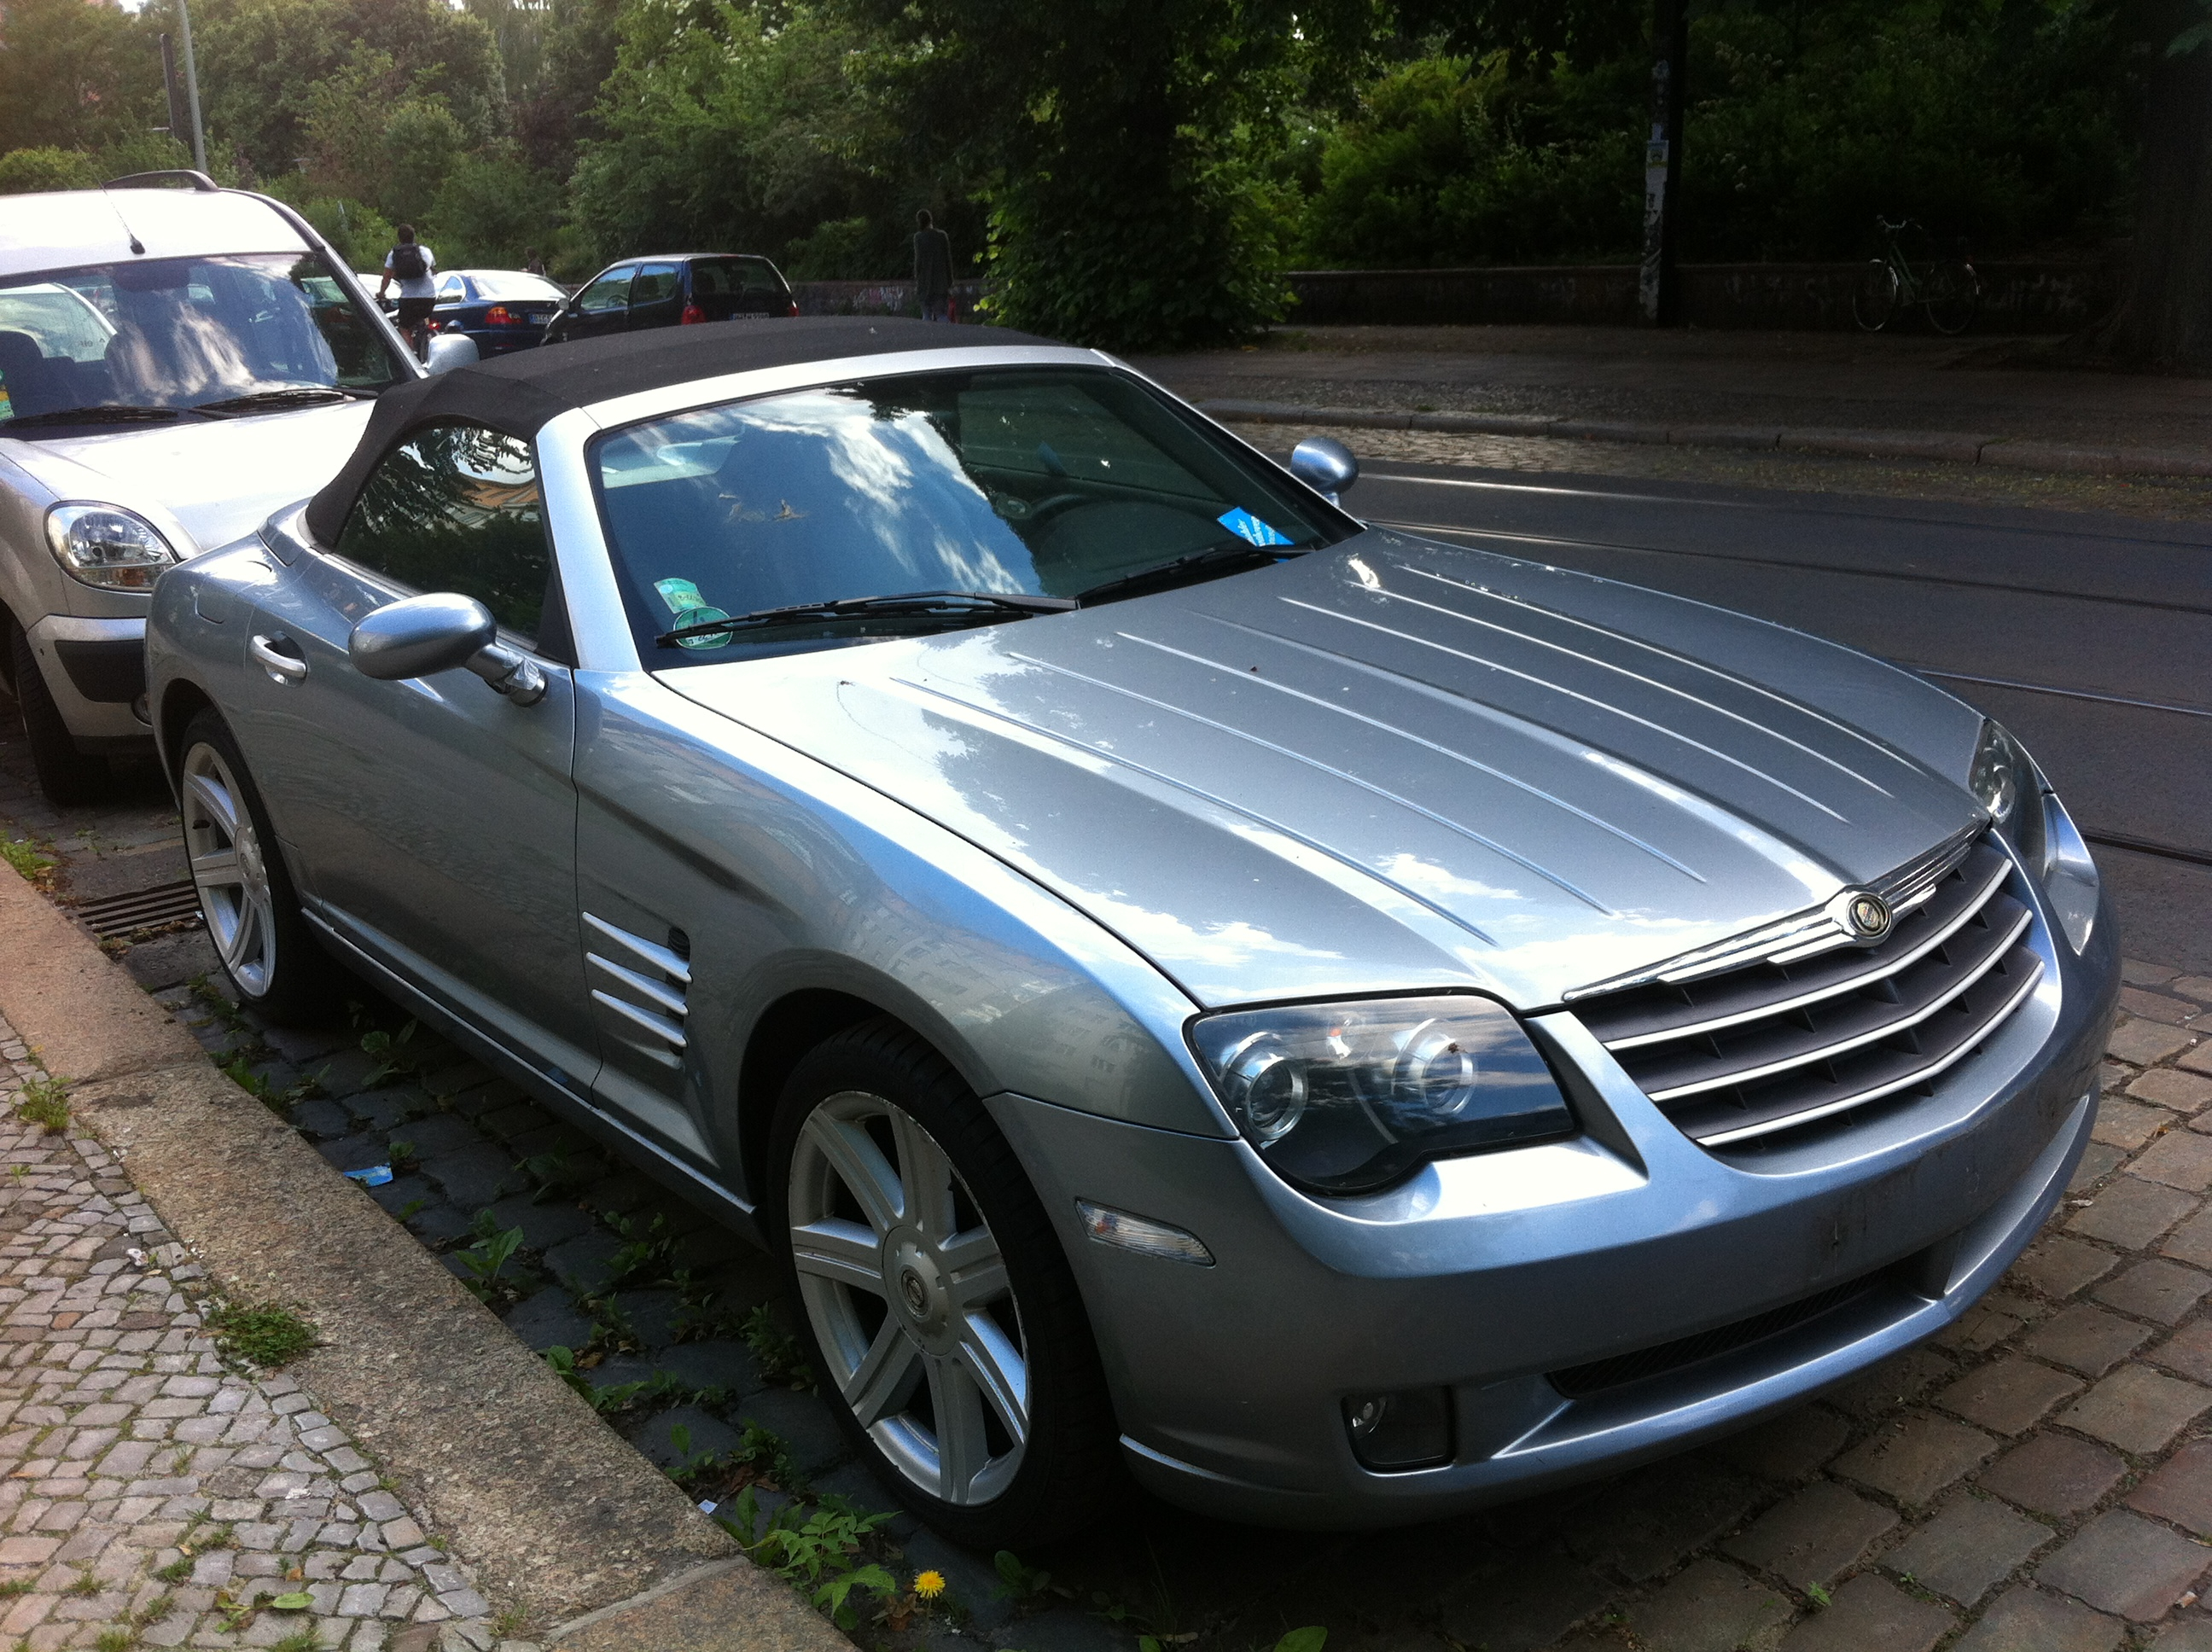 file chrysler crossfire convertible on weinbergsweg in wikimedia commons. Black Bedroom Furniture Sets. Home Design Ideas